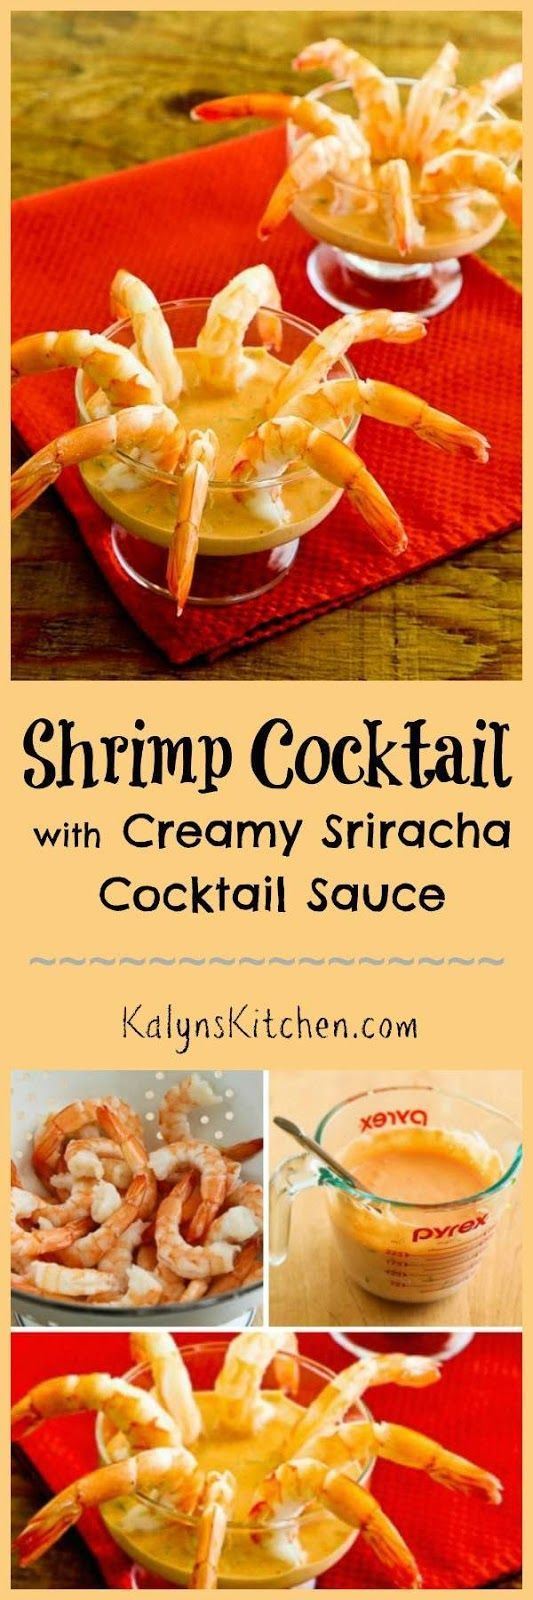 I love this Easy Shrimp Cocktail with Creamy Sriracha Cocktail Sauce; this is about as easy as it gets for a low-carb, gluten-free, and dairy-free holiday appetizer. If you like Sriracha, this is a must-try!  [KalynsKitchen.com]